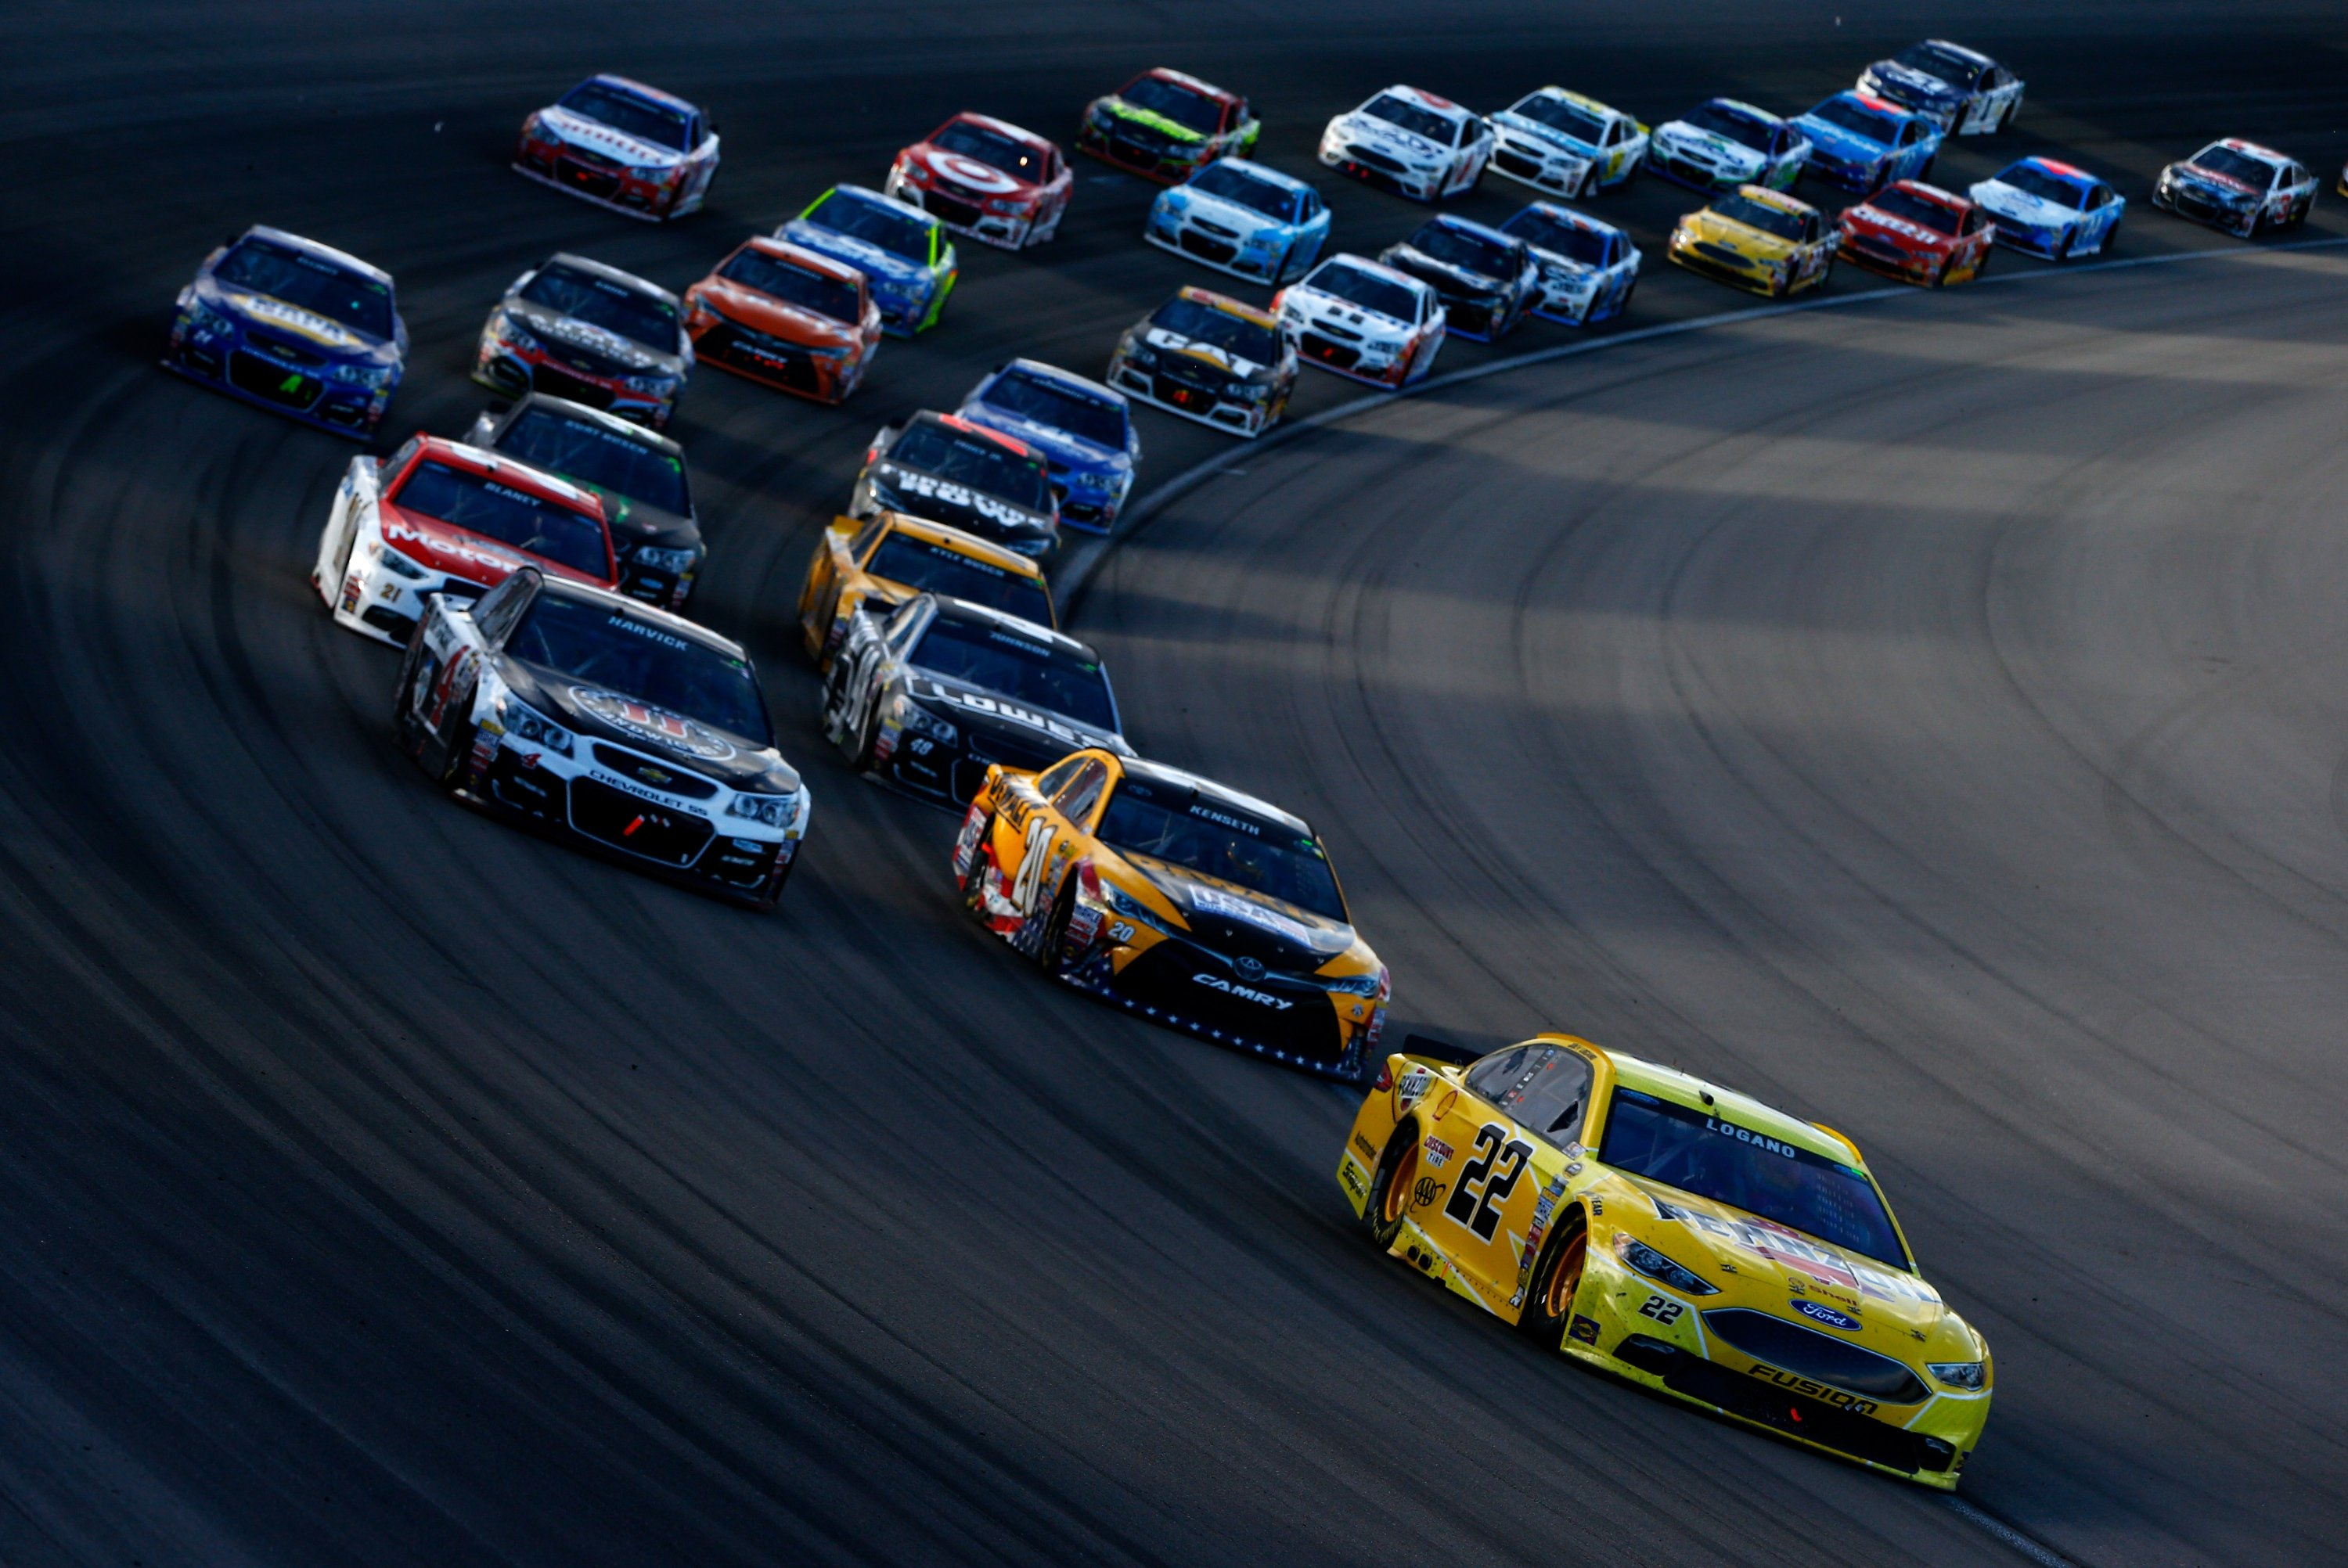 36 nascar hd wallpapers background images wallpaper abyss hd wallpaper background image id700640 3000x2004 sports nascar voltagebd Image collections